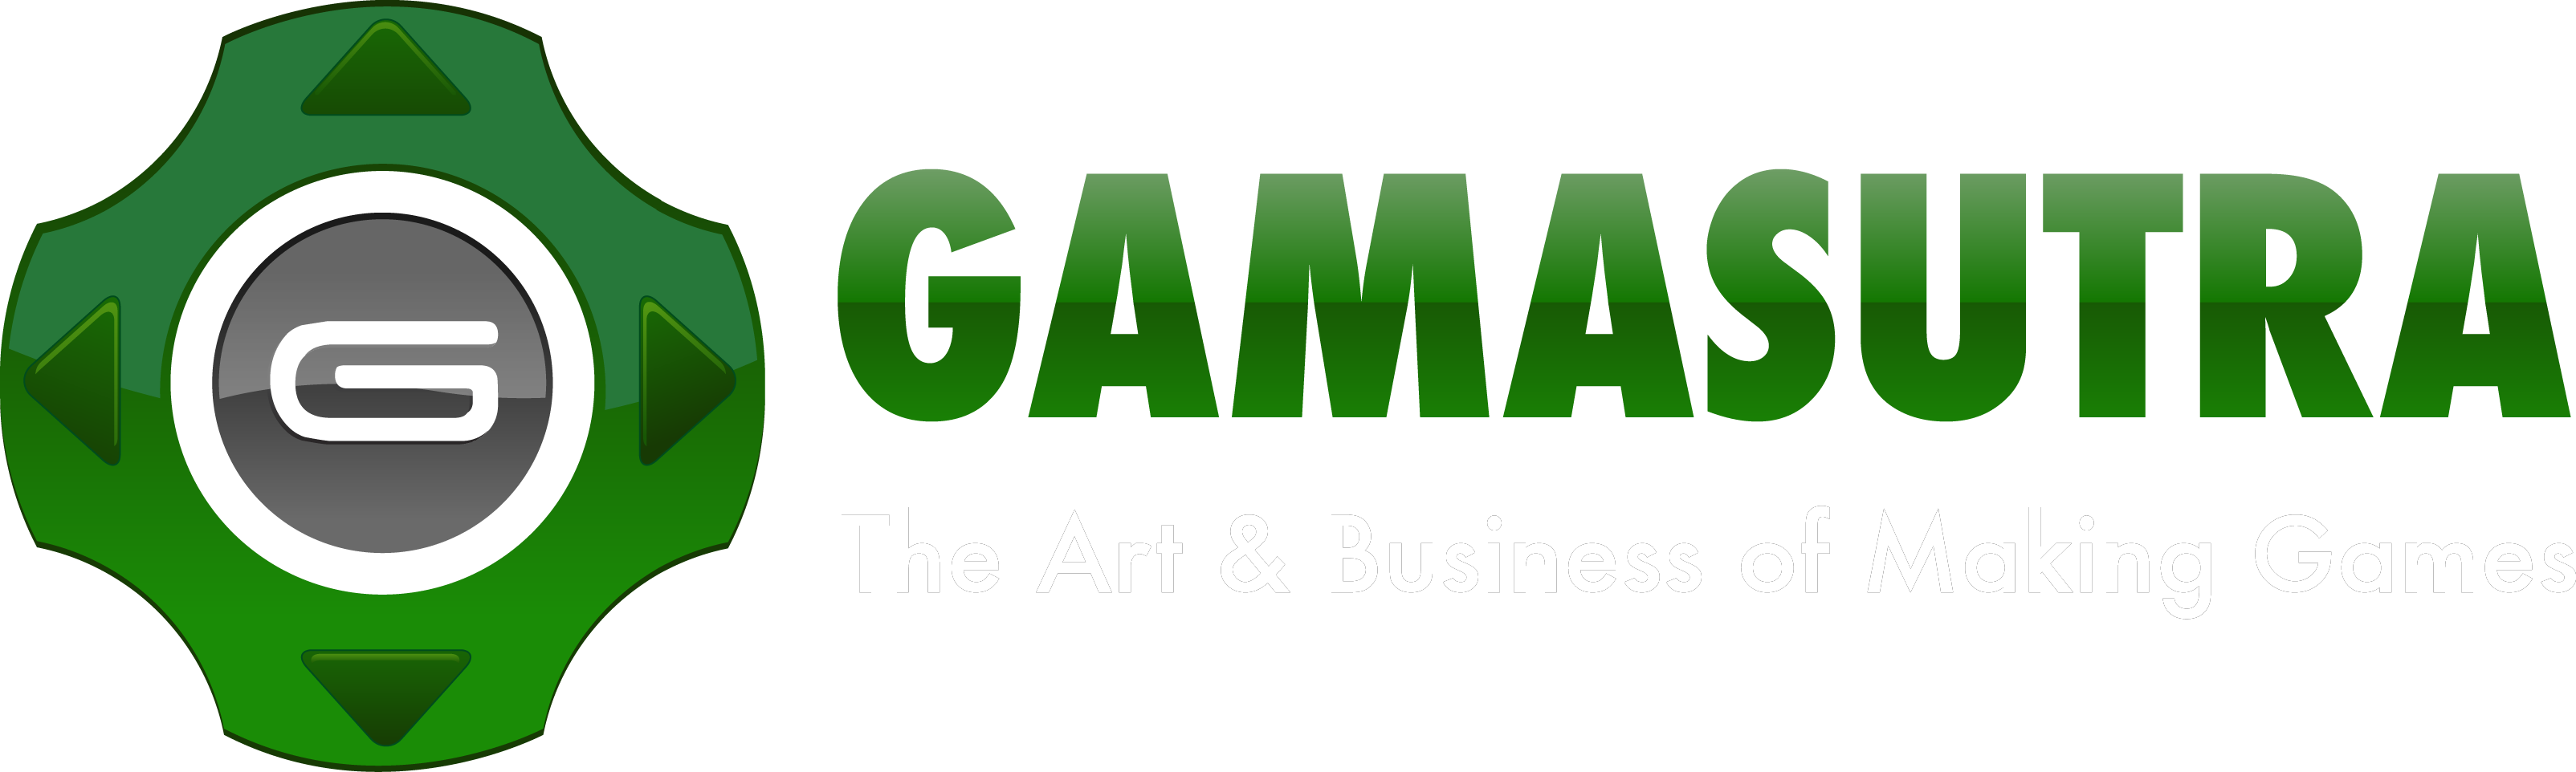 Gamasutra | The Art & Business of Making Games